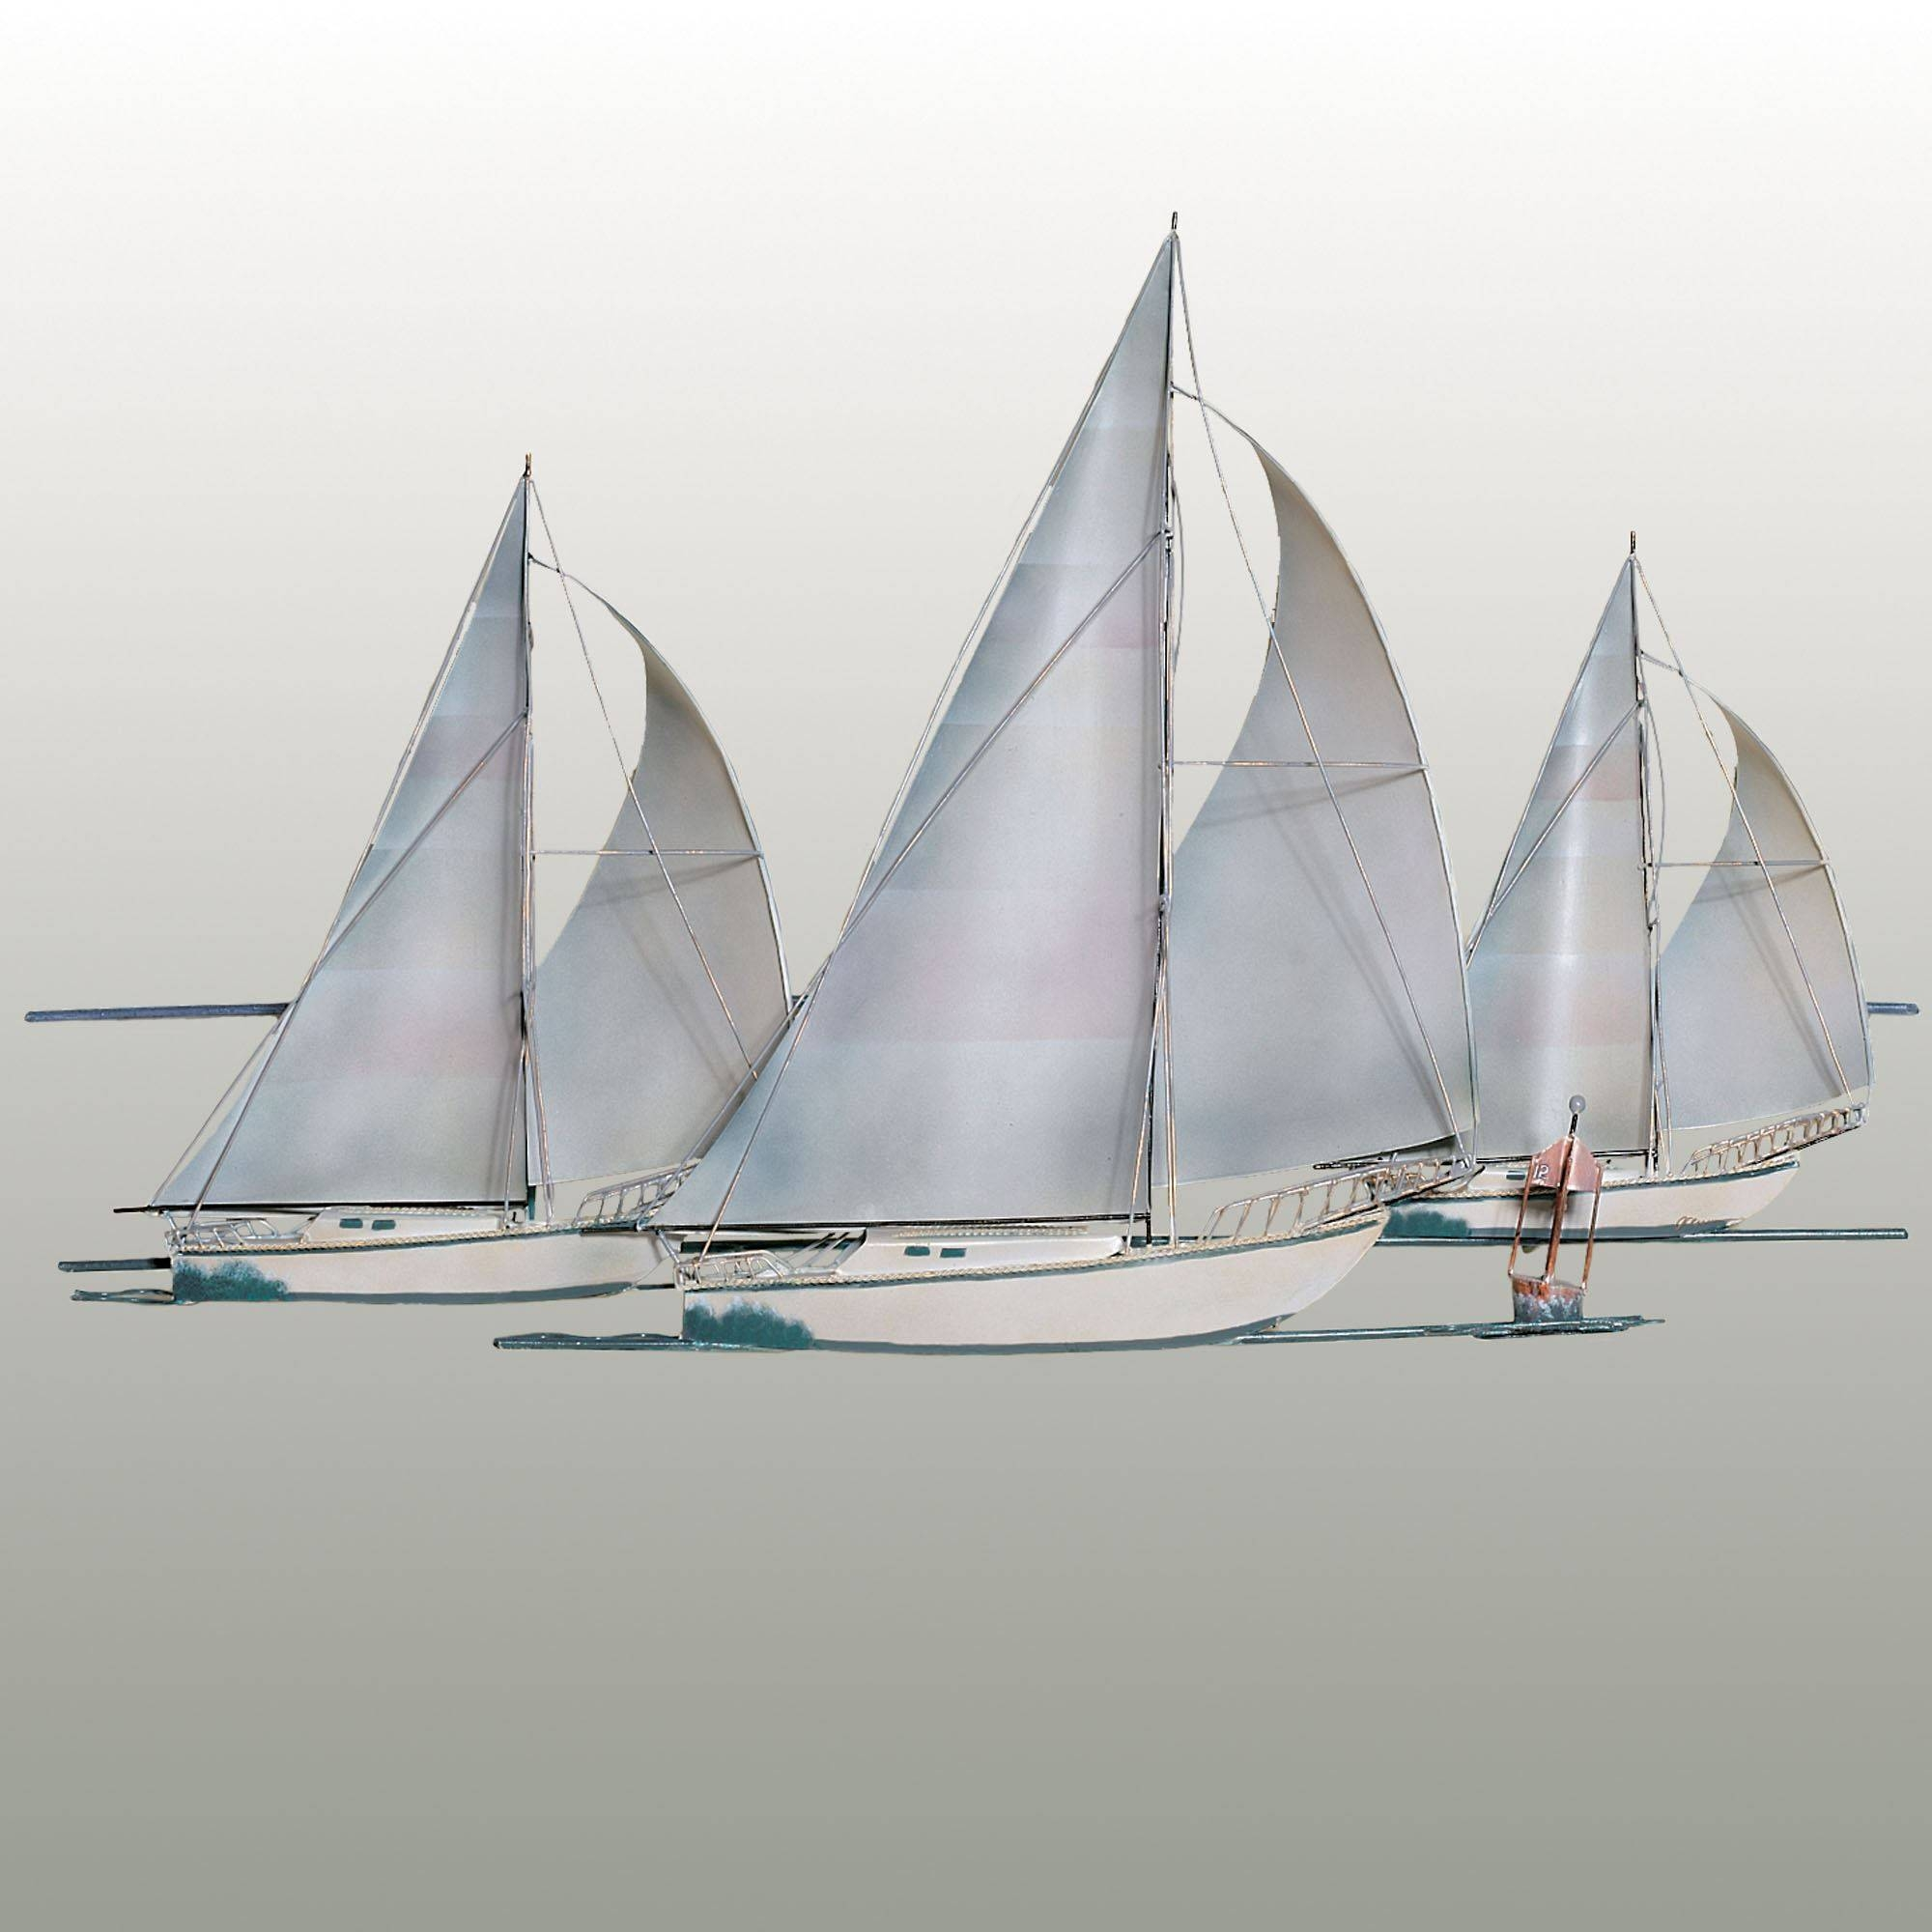 Wall Decor: Sailboat Wall Art Pictures. Trendy Wall. Sailing Ship With Regard To Most Current Sailboat Metal Wall Art (Gallery 11 of 30)